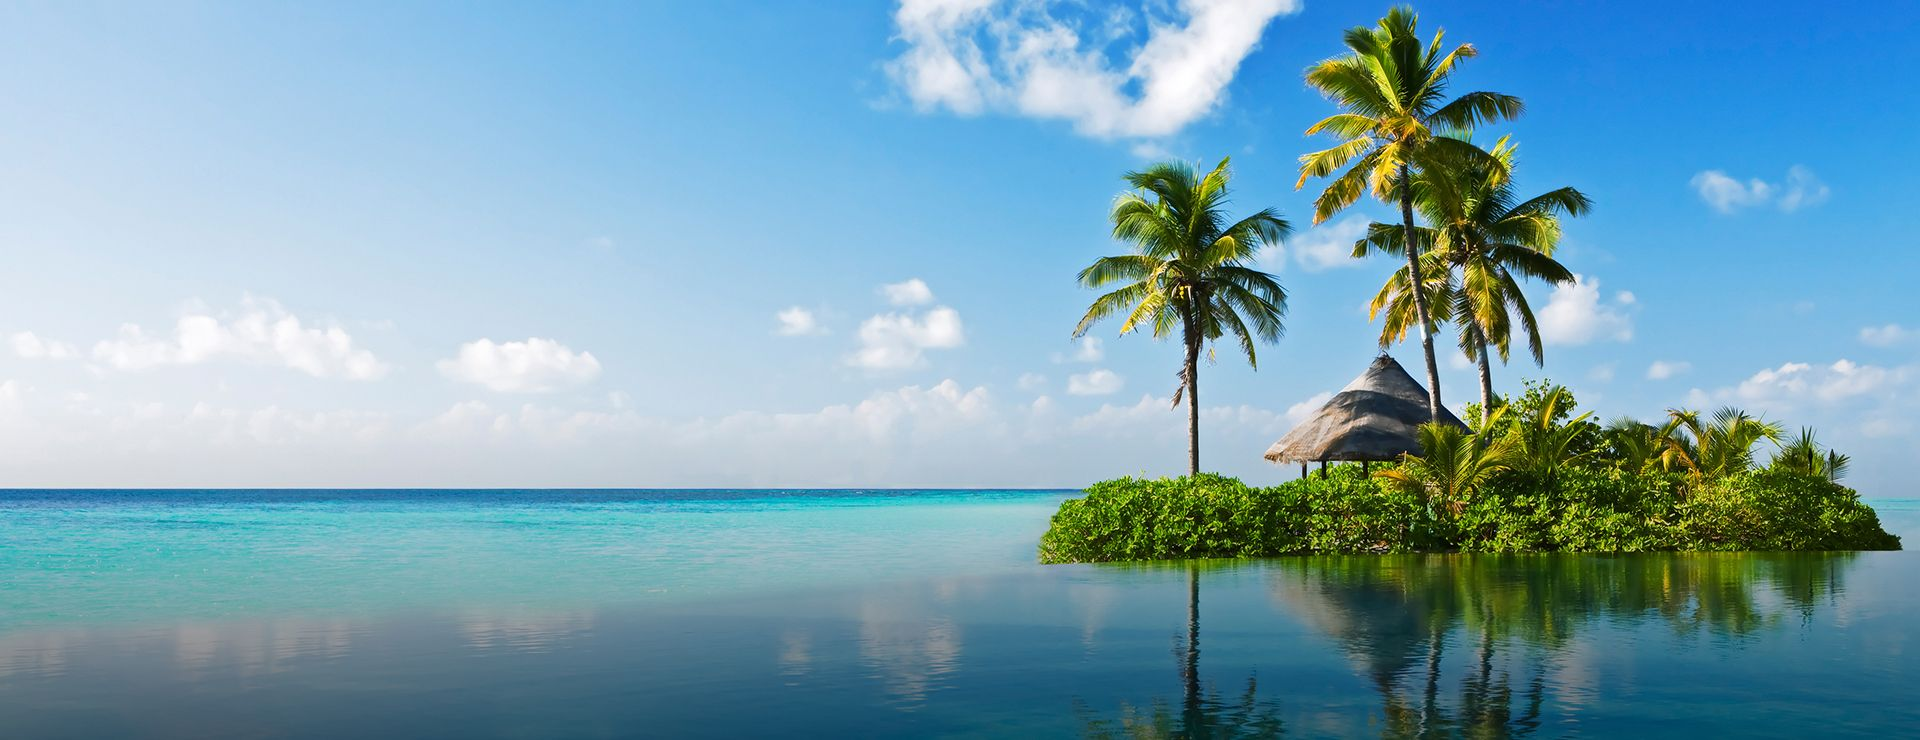 Maldives Holiday Packages Best Hotel Deals Holiday Factory